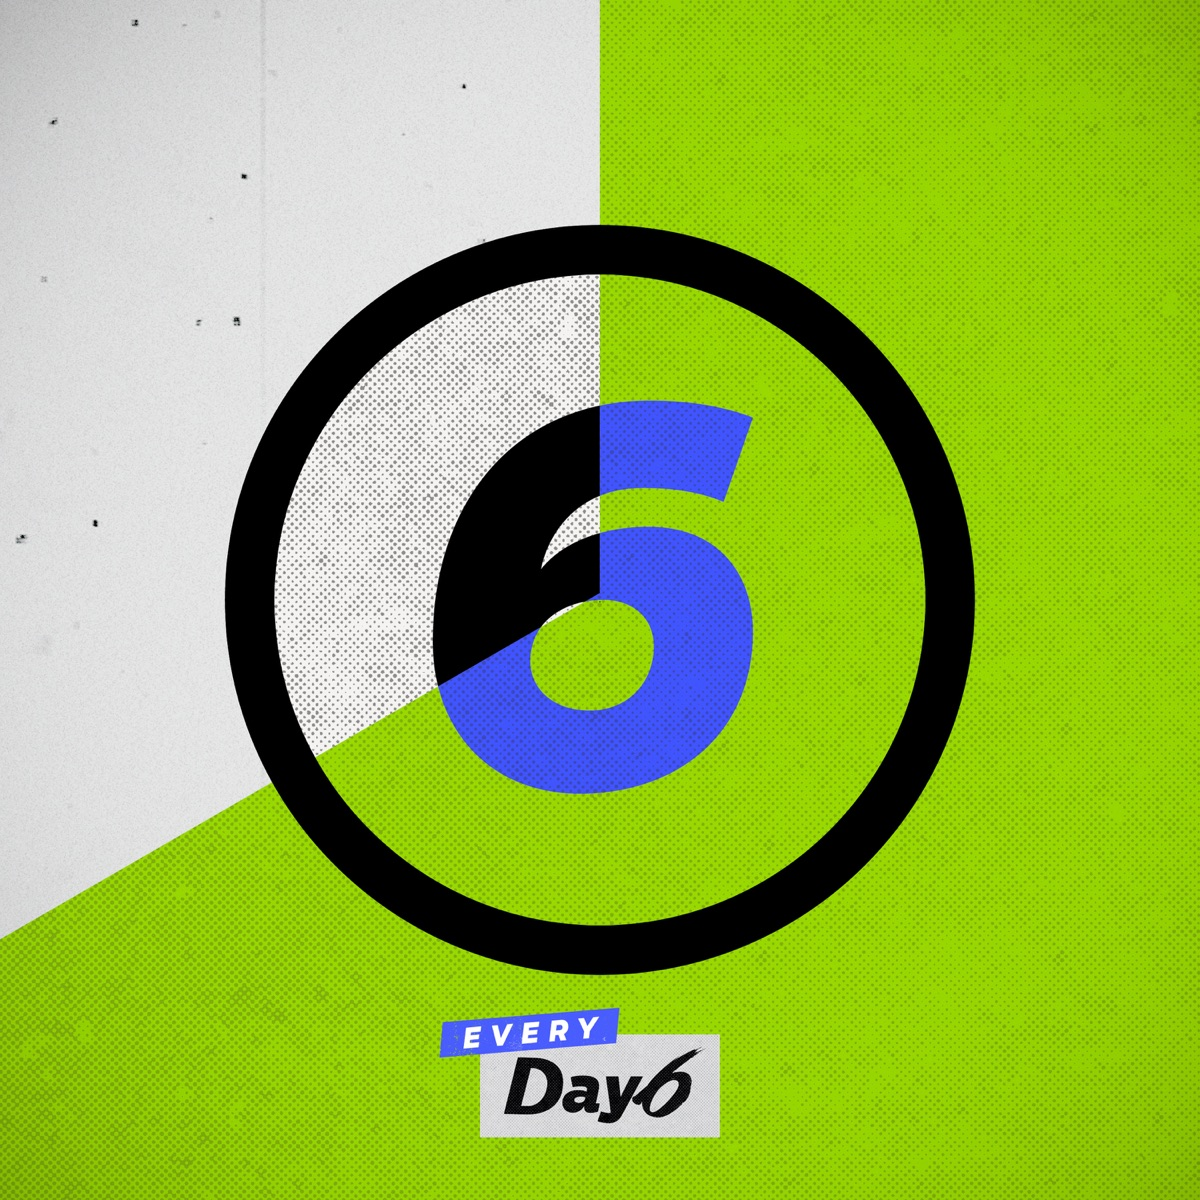 Every DAY6 August - Single Album Cover by DAY6